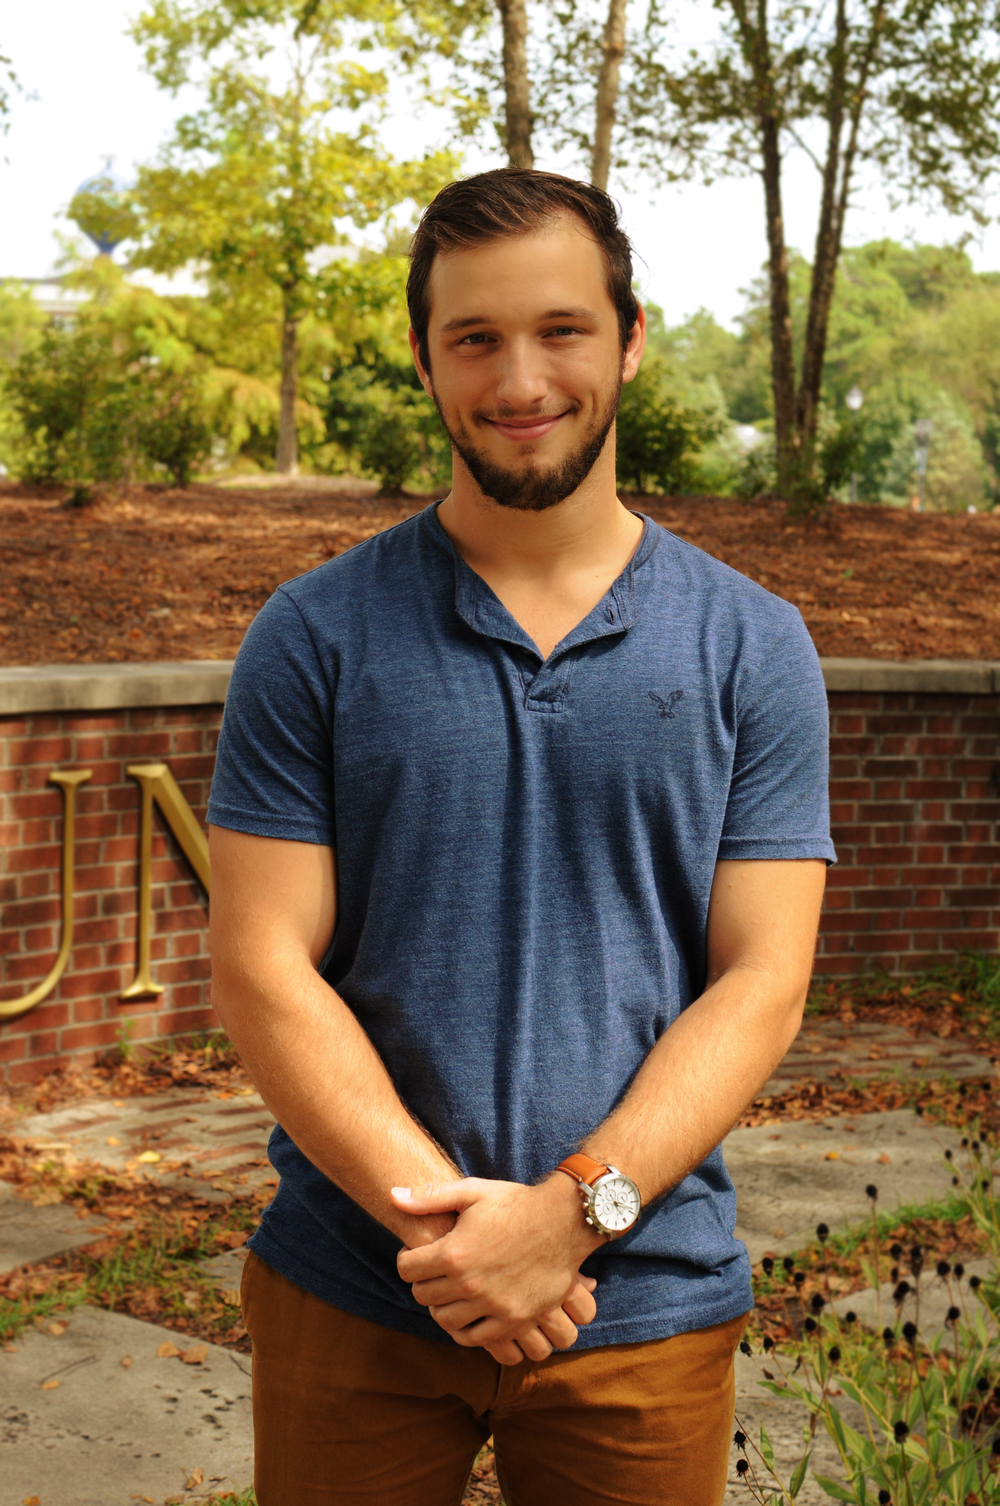 "Shawn is a senior at UNC Wilmington working towards a degree in both Marketing and Communication Studies. After graduation, he would like to work at a marketing firm or a brand consulting firm, but hopes to one day start a business of his own. He loves watching movies, playing sports, and hanging out with his dog, Airlie. Find Shawn on LinkedIn ""A mind needs books as a sword needs a whetstone if it is to keep its edge.""   -Tyrion Lannister"